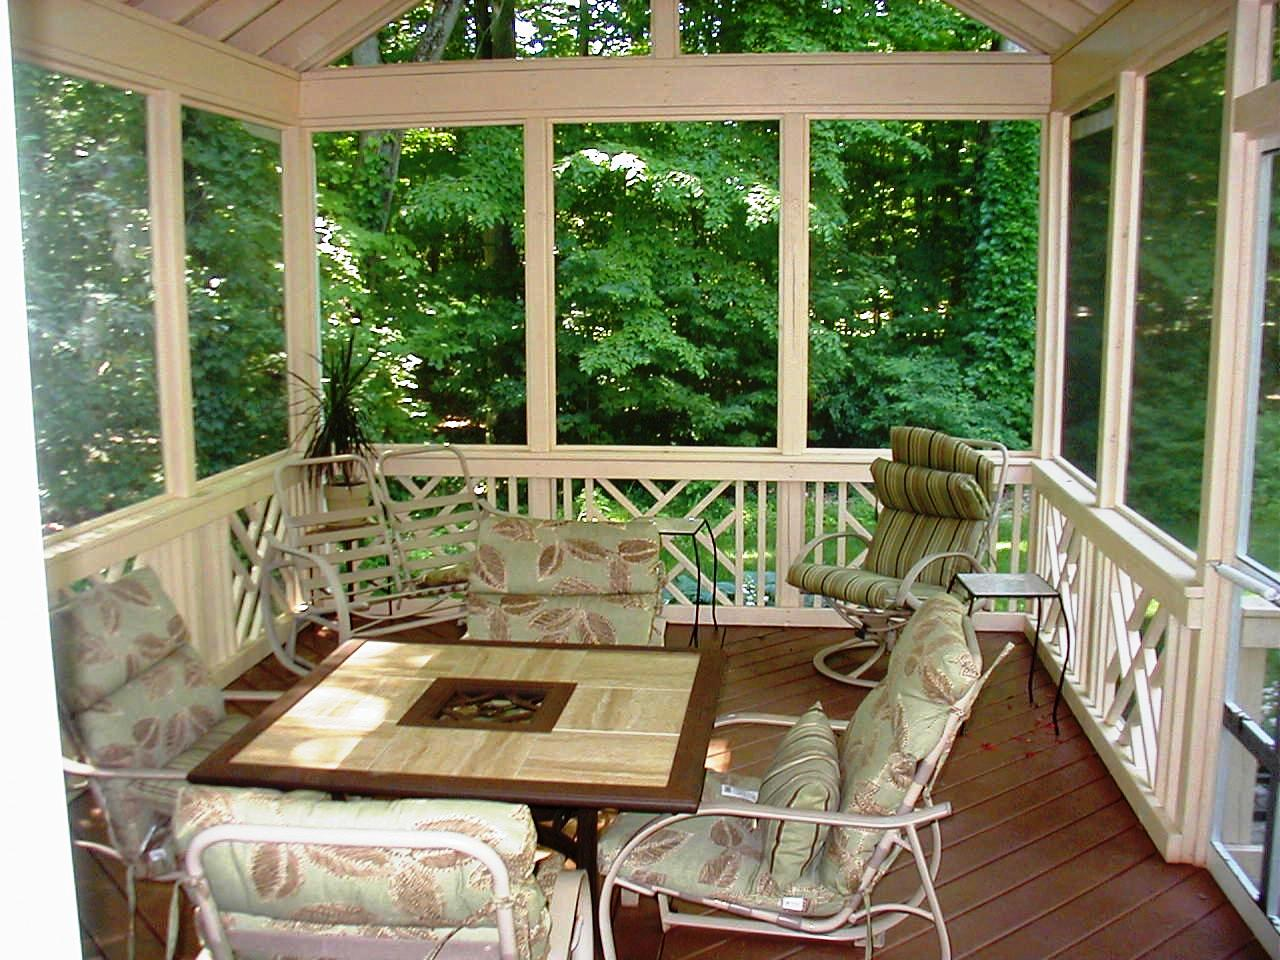 Screen porch flooring options and considerations in columbus columbus decks porches and - Screen porch roof set ...